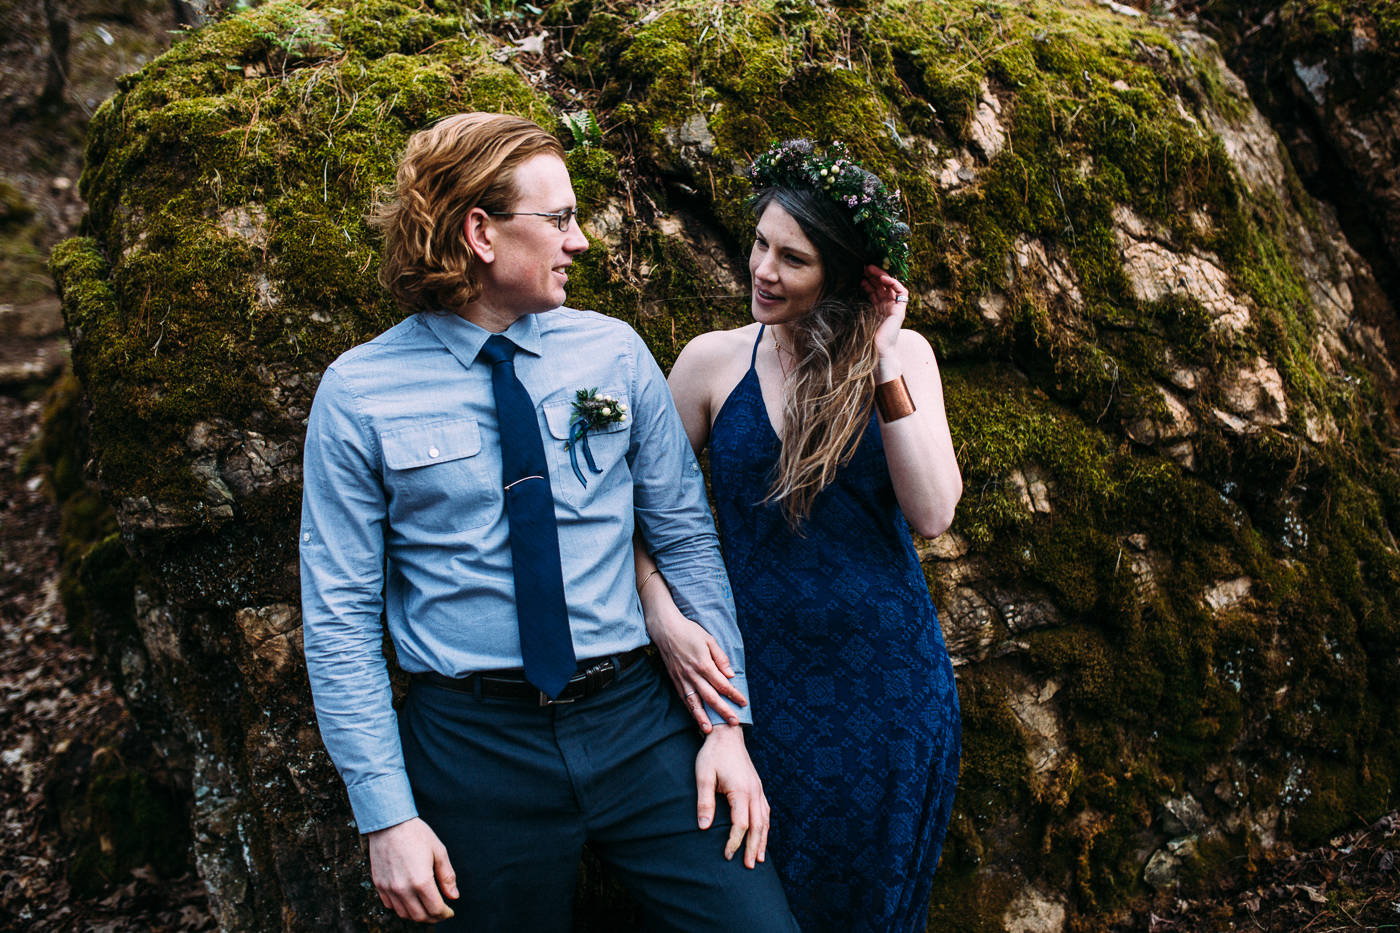 erinwheat photography-jplaurenelopement6779